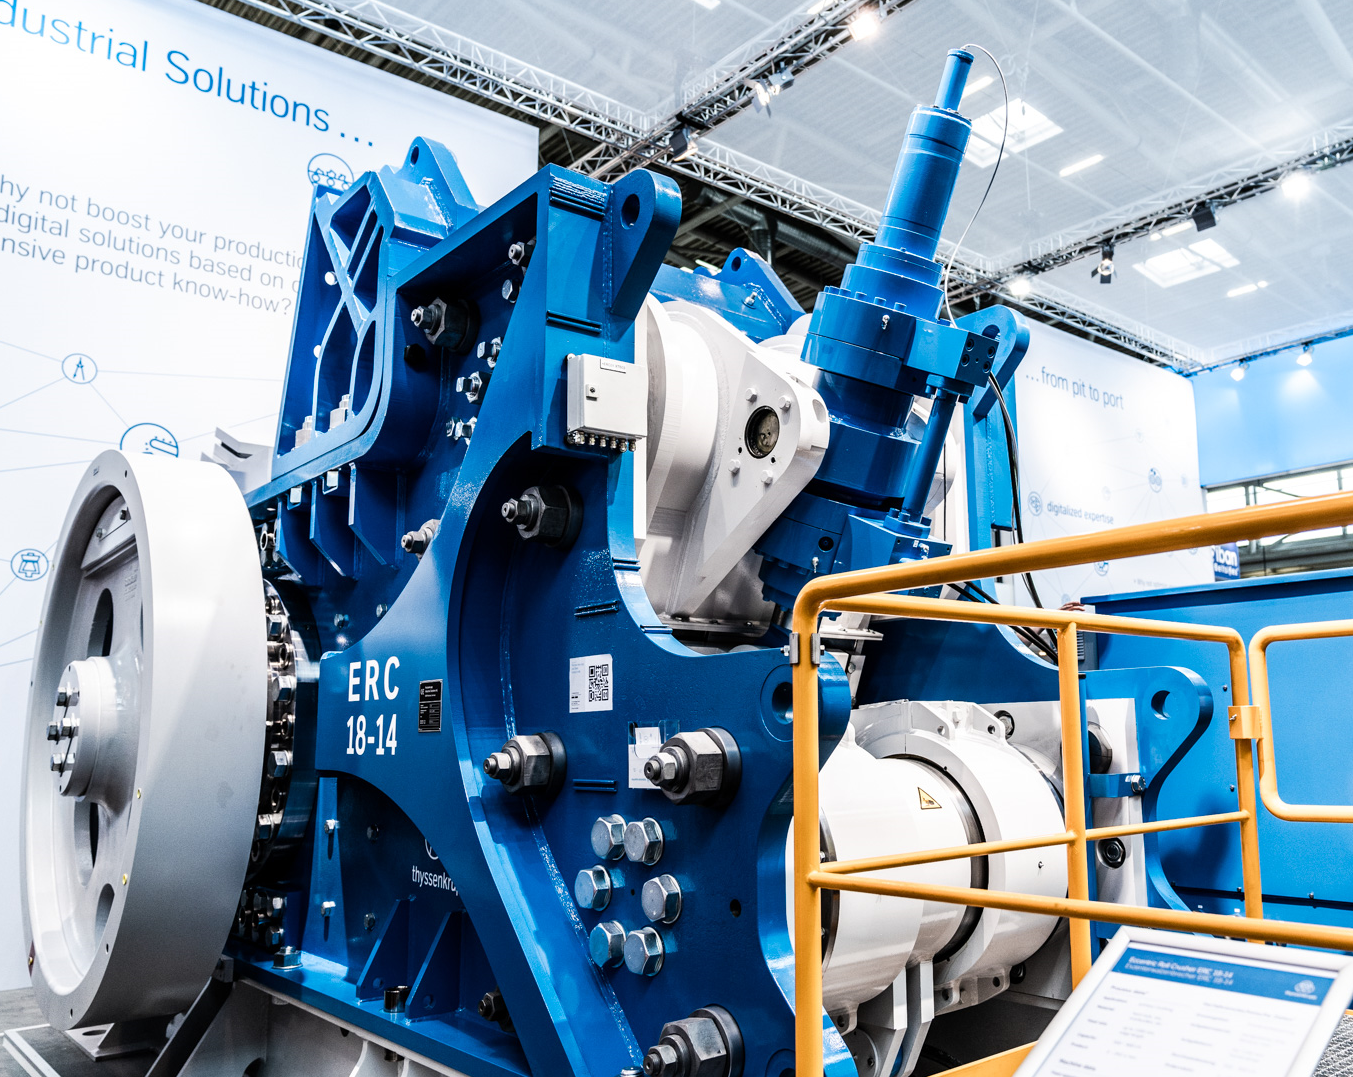 We developed a new generation of mining equipment to improve mining operations. Learn more about our eccentric roll crusher.